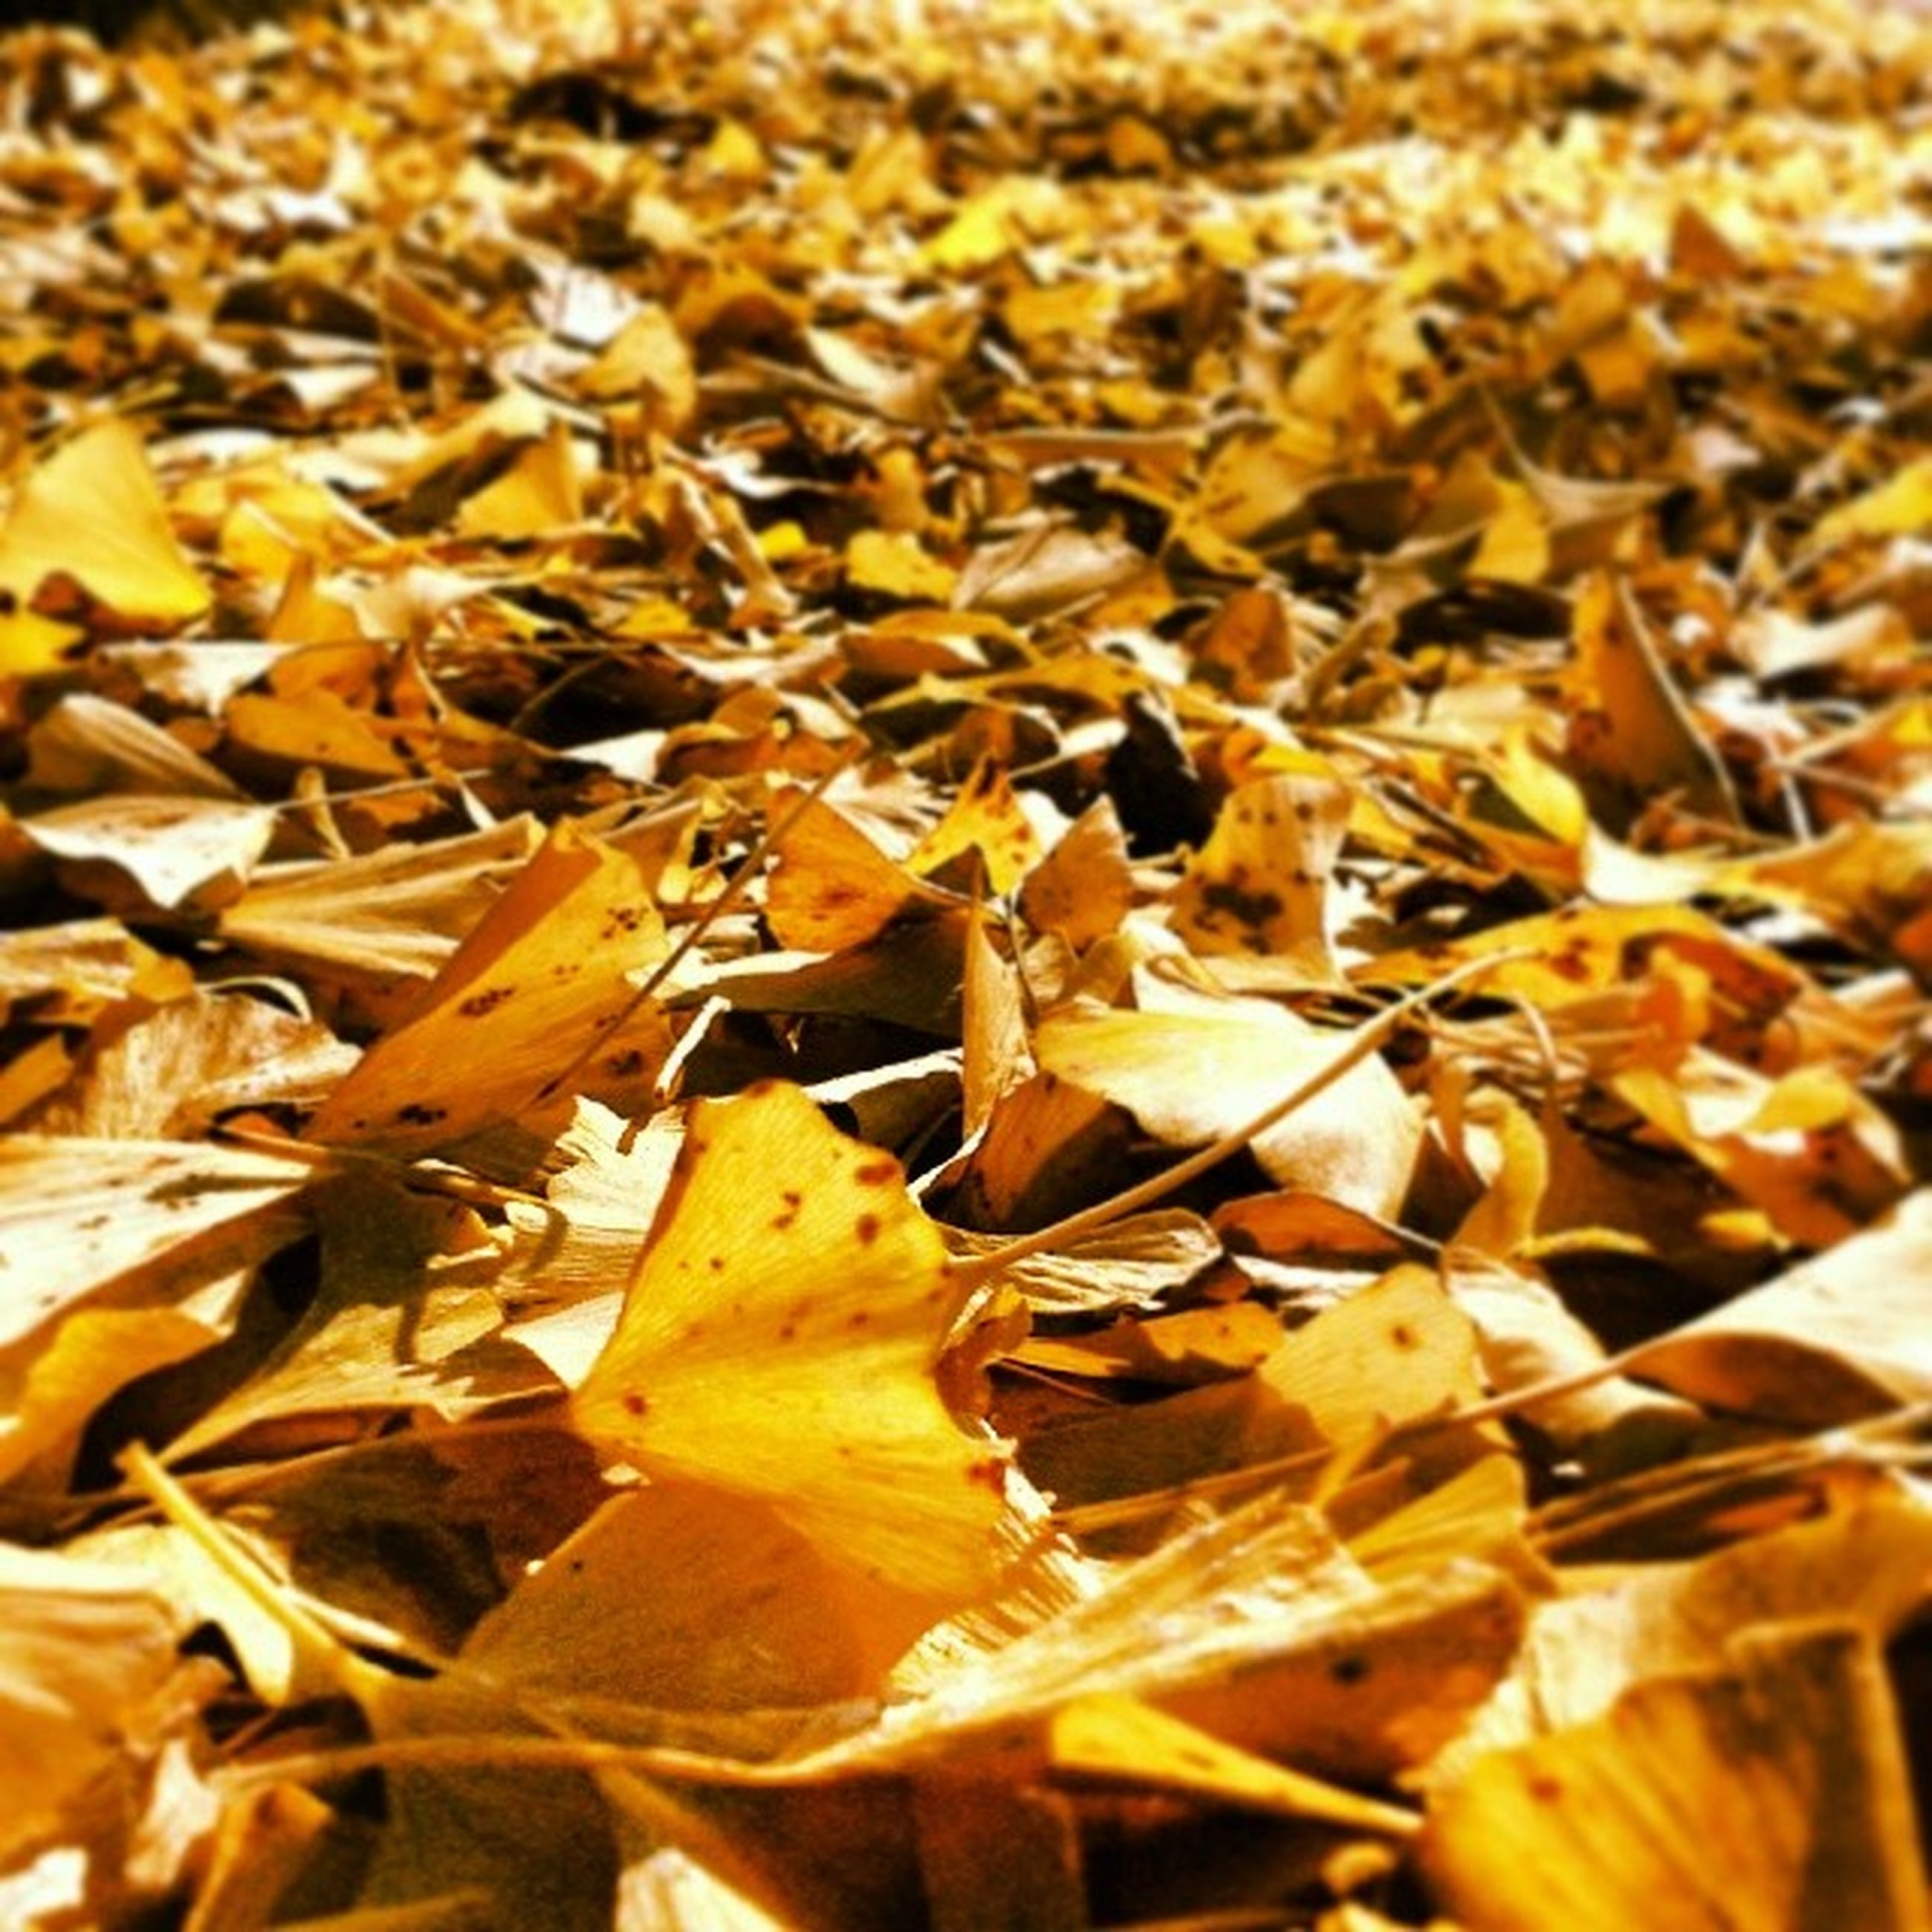 autumn, leaf, change, dry, yellow, leaves, season, nature, full frame, close-up, backgrounds, abundance, fallen, selective focus, focus on foreground, high angle view, fragility, day, outdoors, sunlight